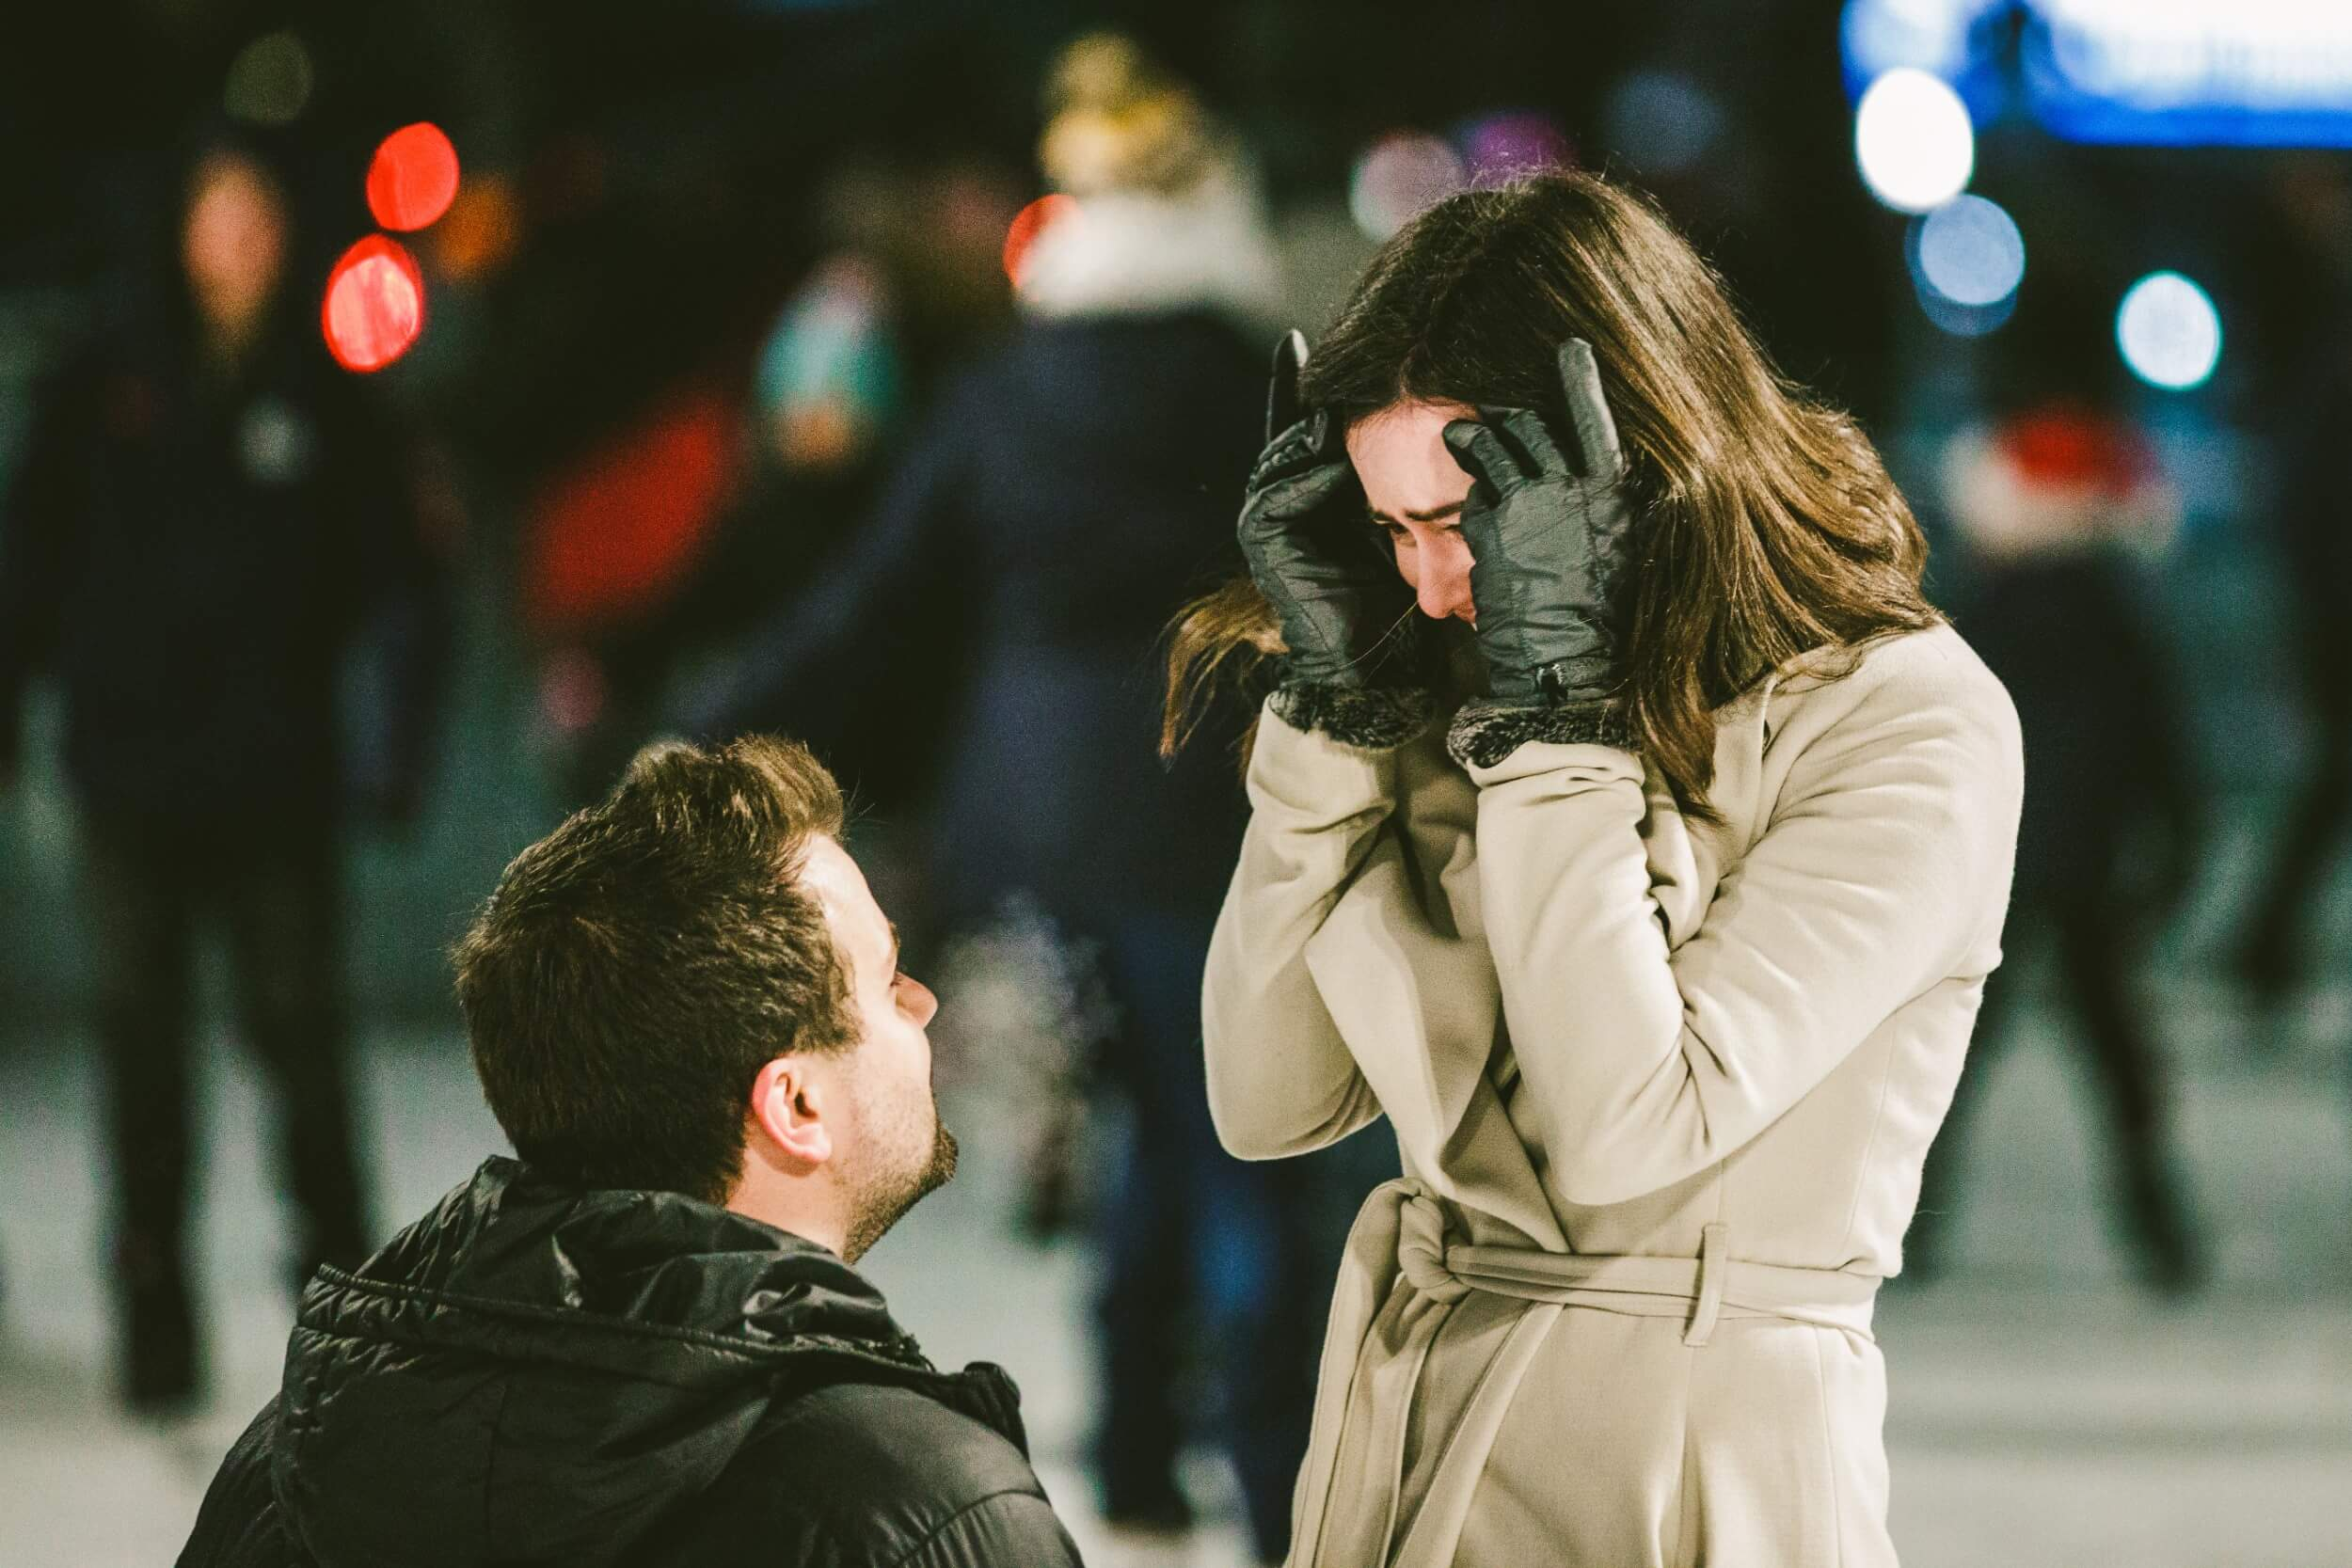 Ice Ribbon suprise proposal spokane (17).jpg